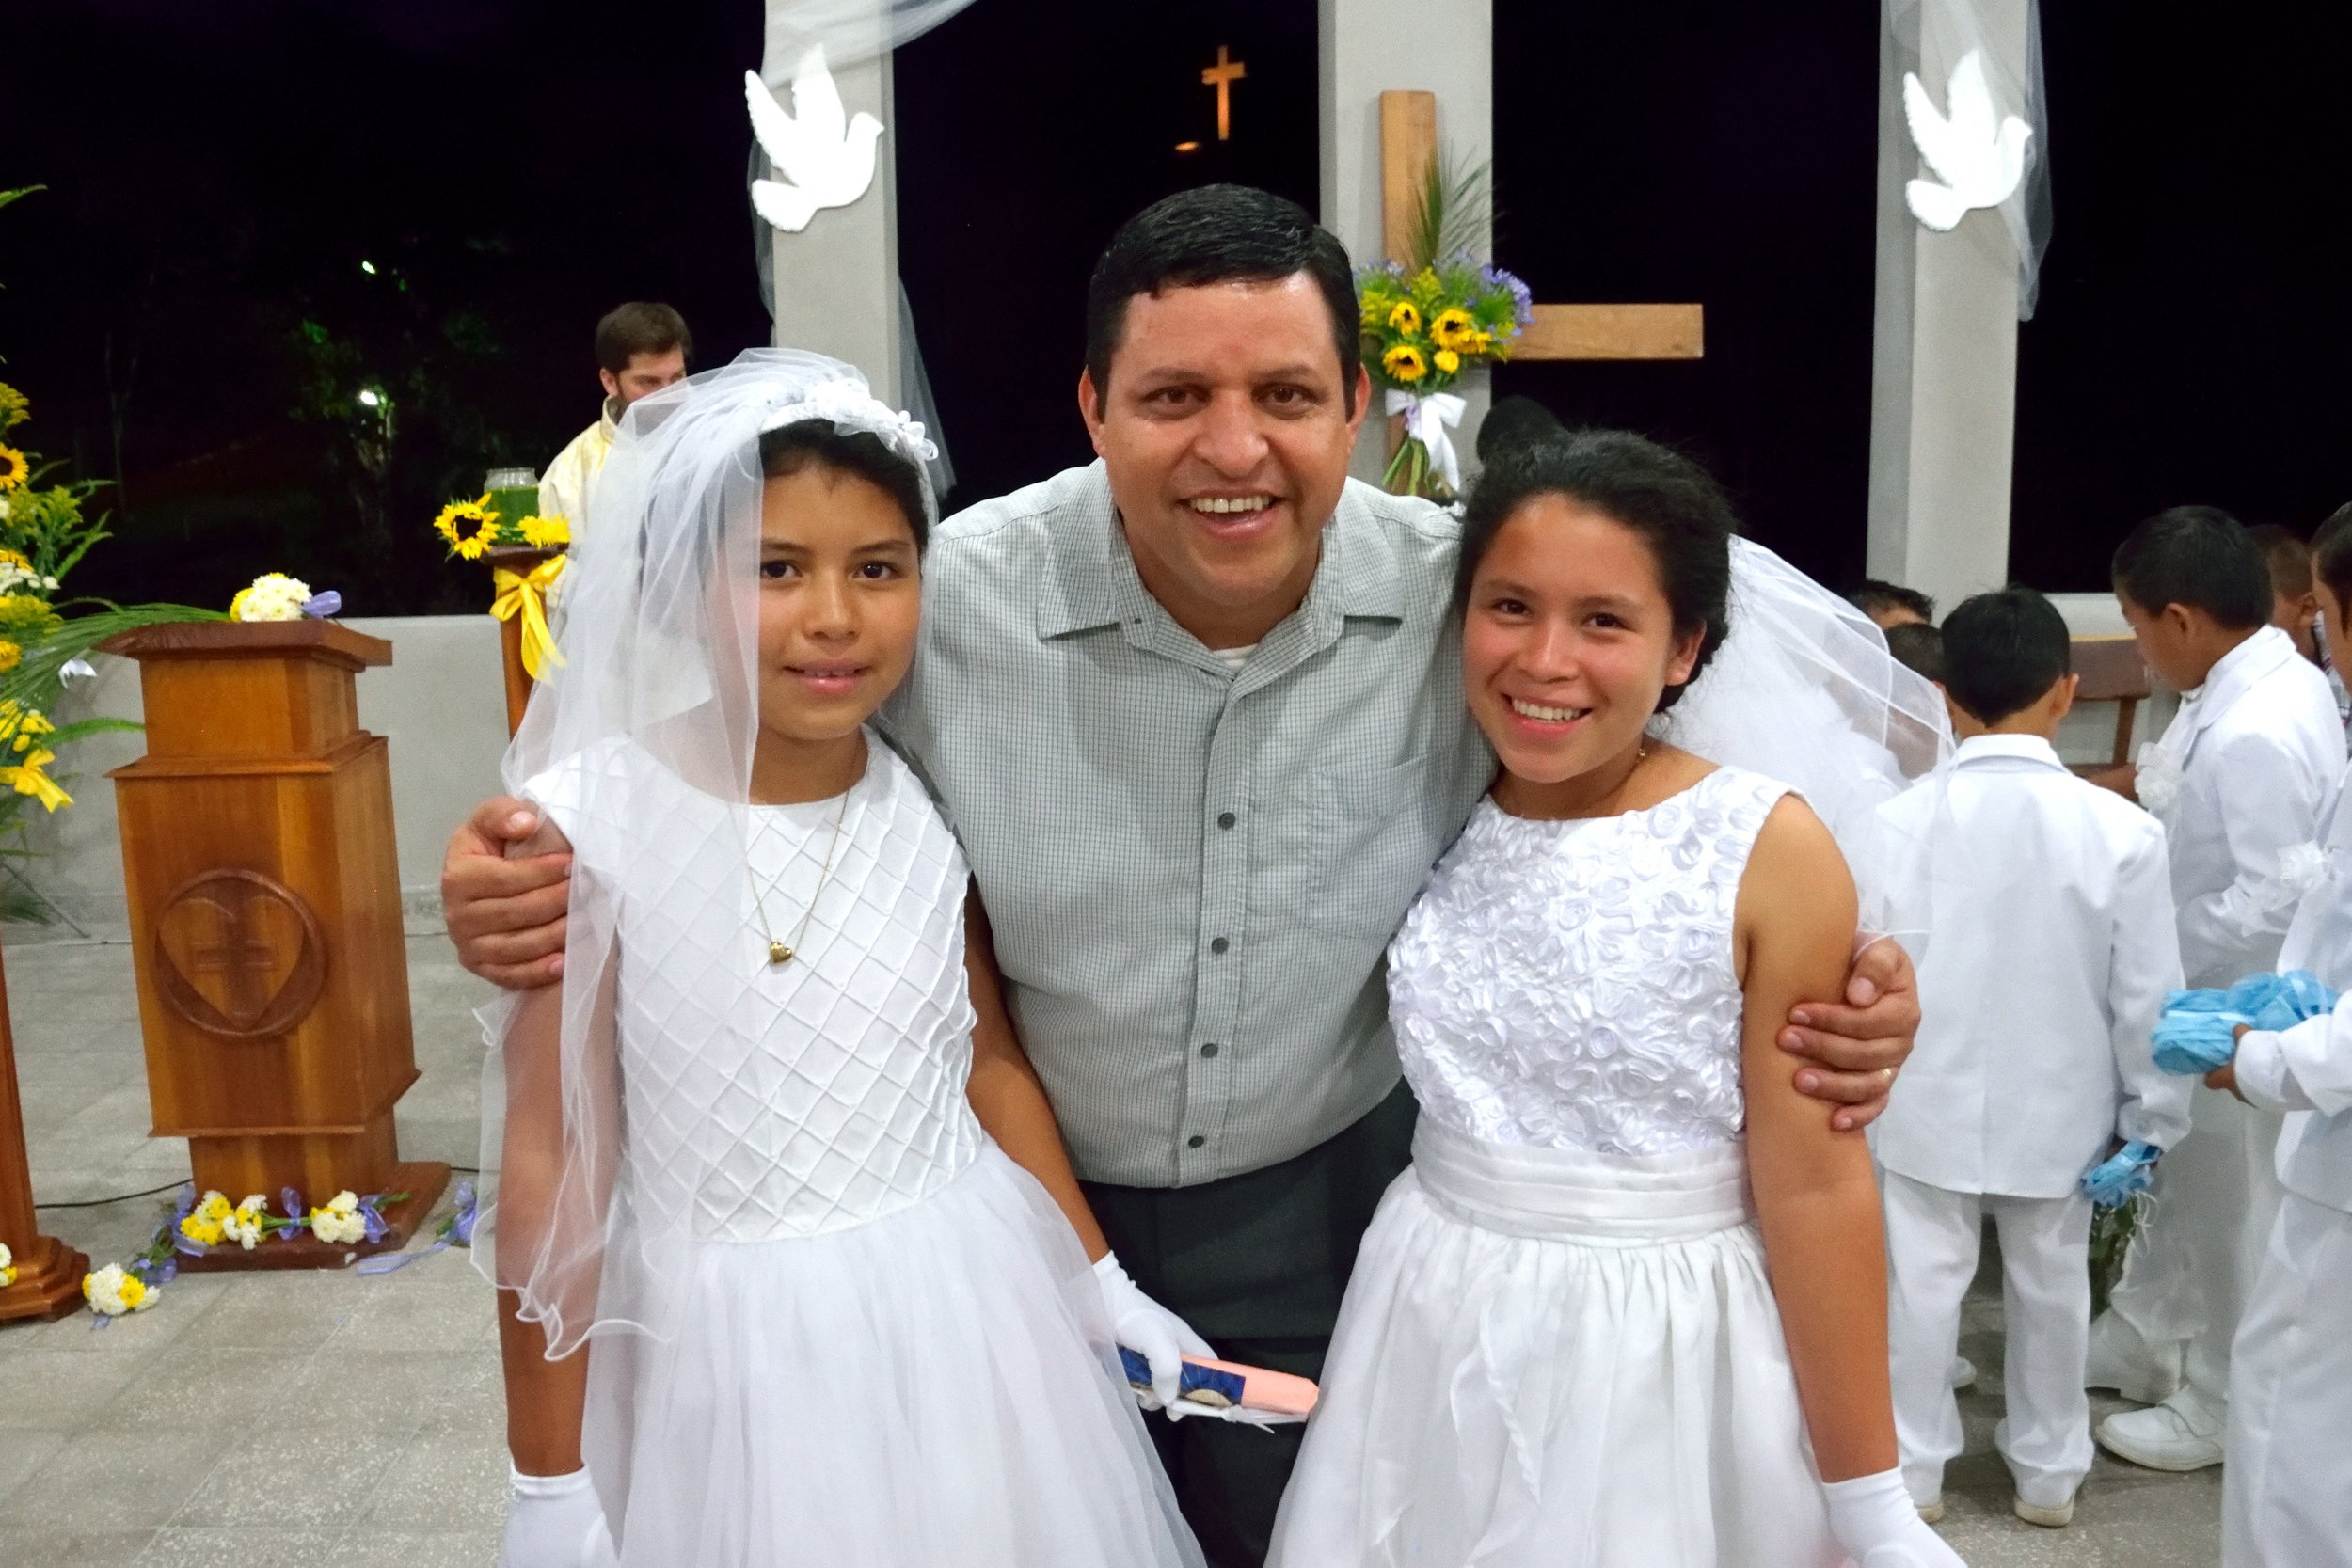 Virginia and one of her sisters with Padrino Wilson after they received their First Communion last April.